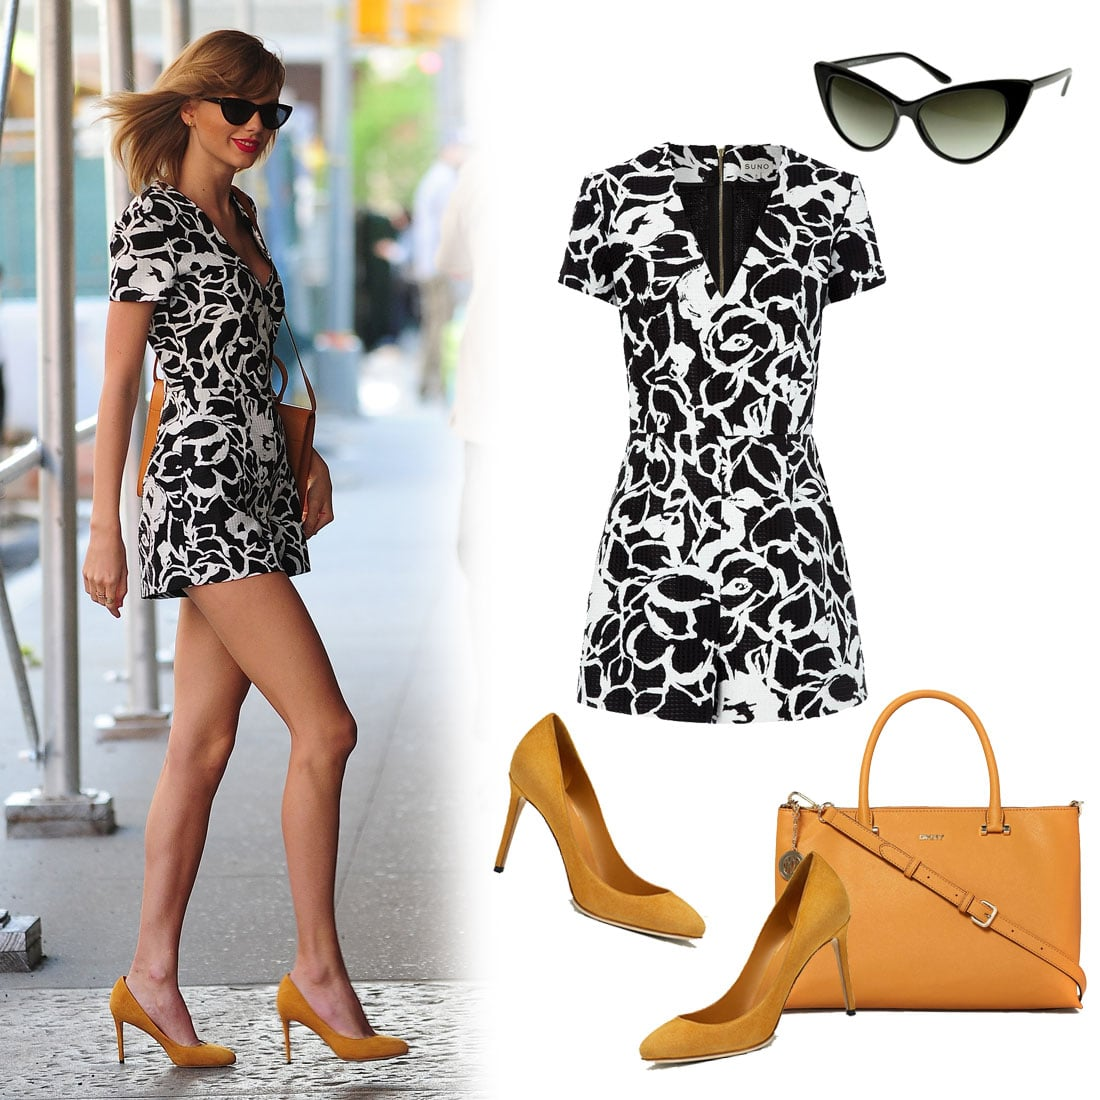 . . . So we shopped it out with the exact Suno romper and a great pair of classic Gucci heels. Of course, if you're looking for budget-friendly alternatives, we've got those right below, too. Shop the look:  Cat Eye zerouv Hot Tip Pointed Vintage Sunglasses ($10) Suno Floral Strokes Textured Playsuit ($650) Gucci Suede Pump ($635) DKNY Saffiano Tan Medium Tote Bag ($362)